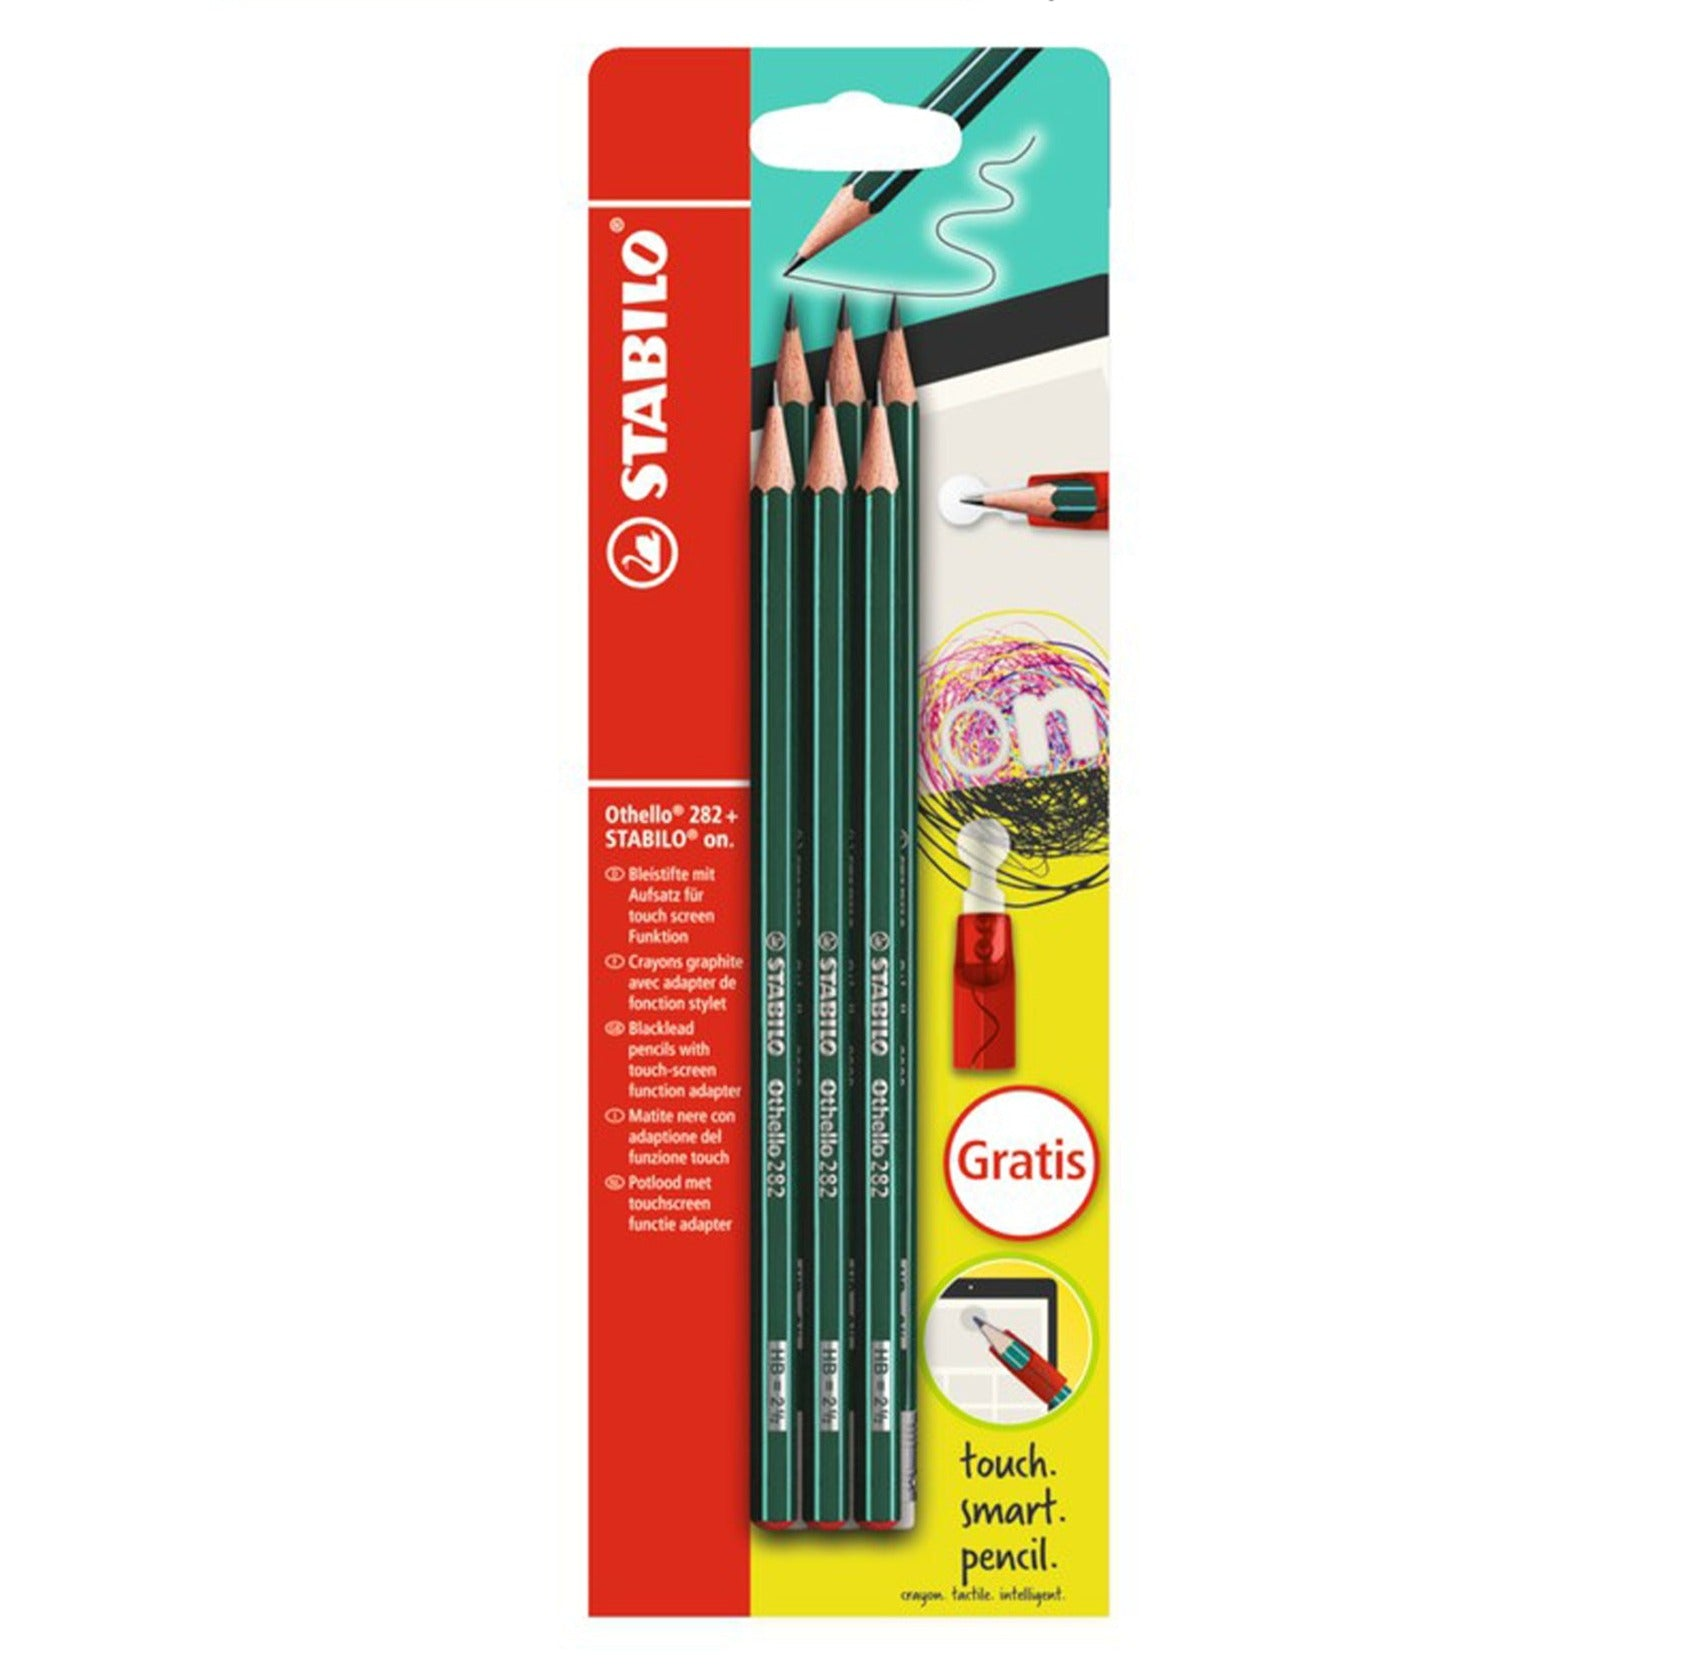 STABILO Othello 282+ Graphite pencil set of 6 - Schwan-STABILO -Most colourful Stationery Shop